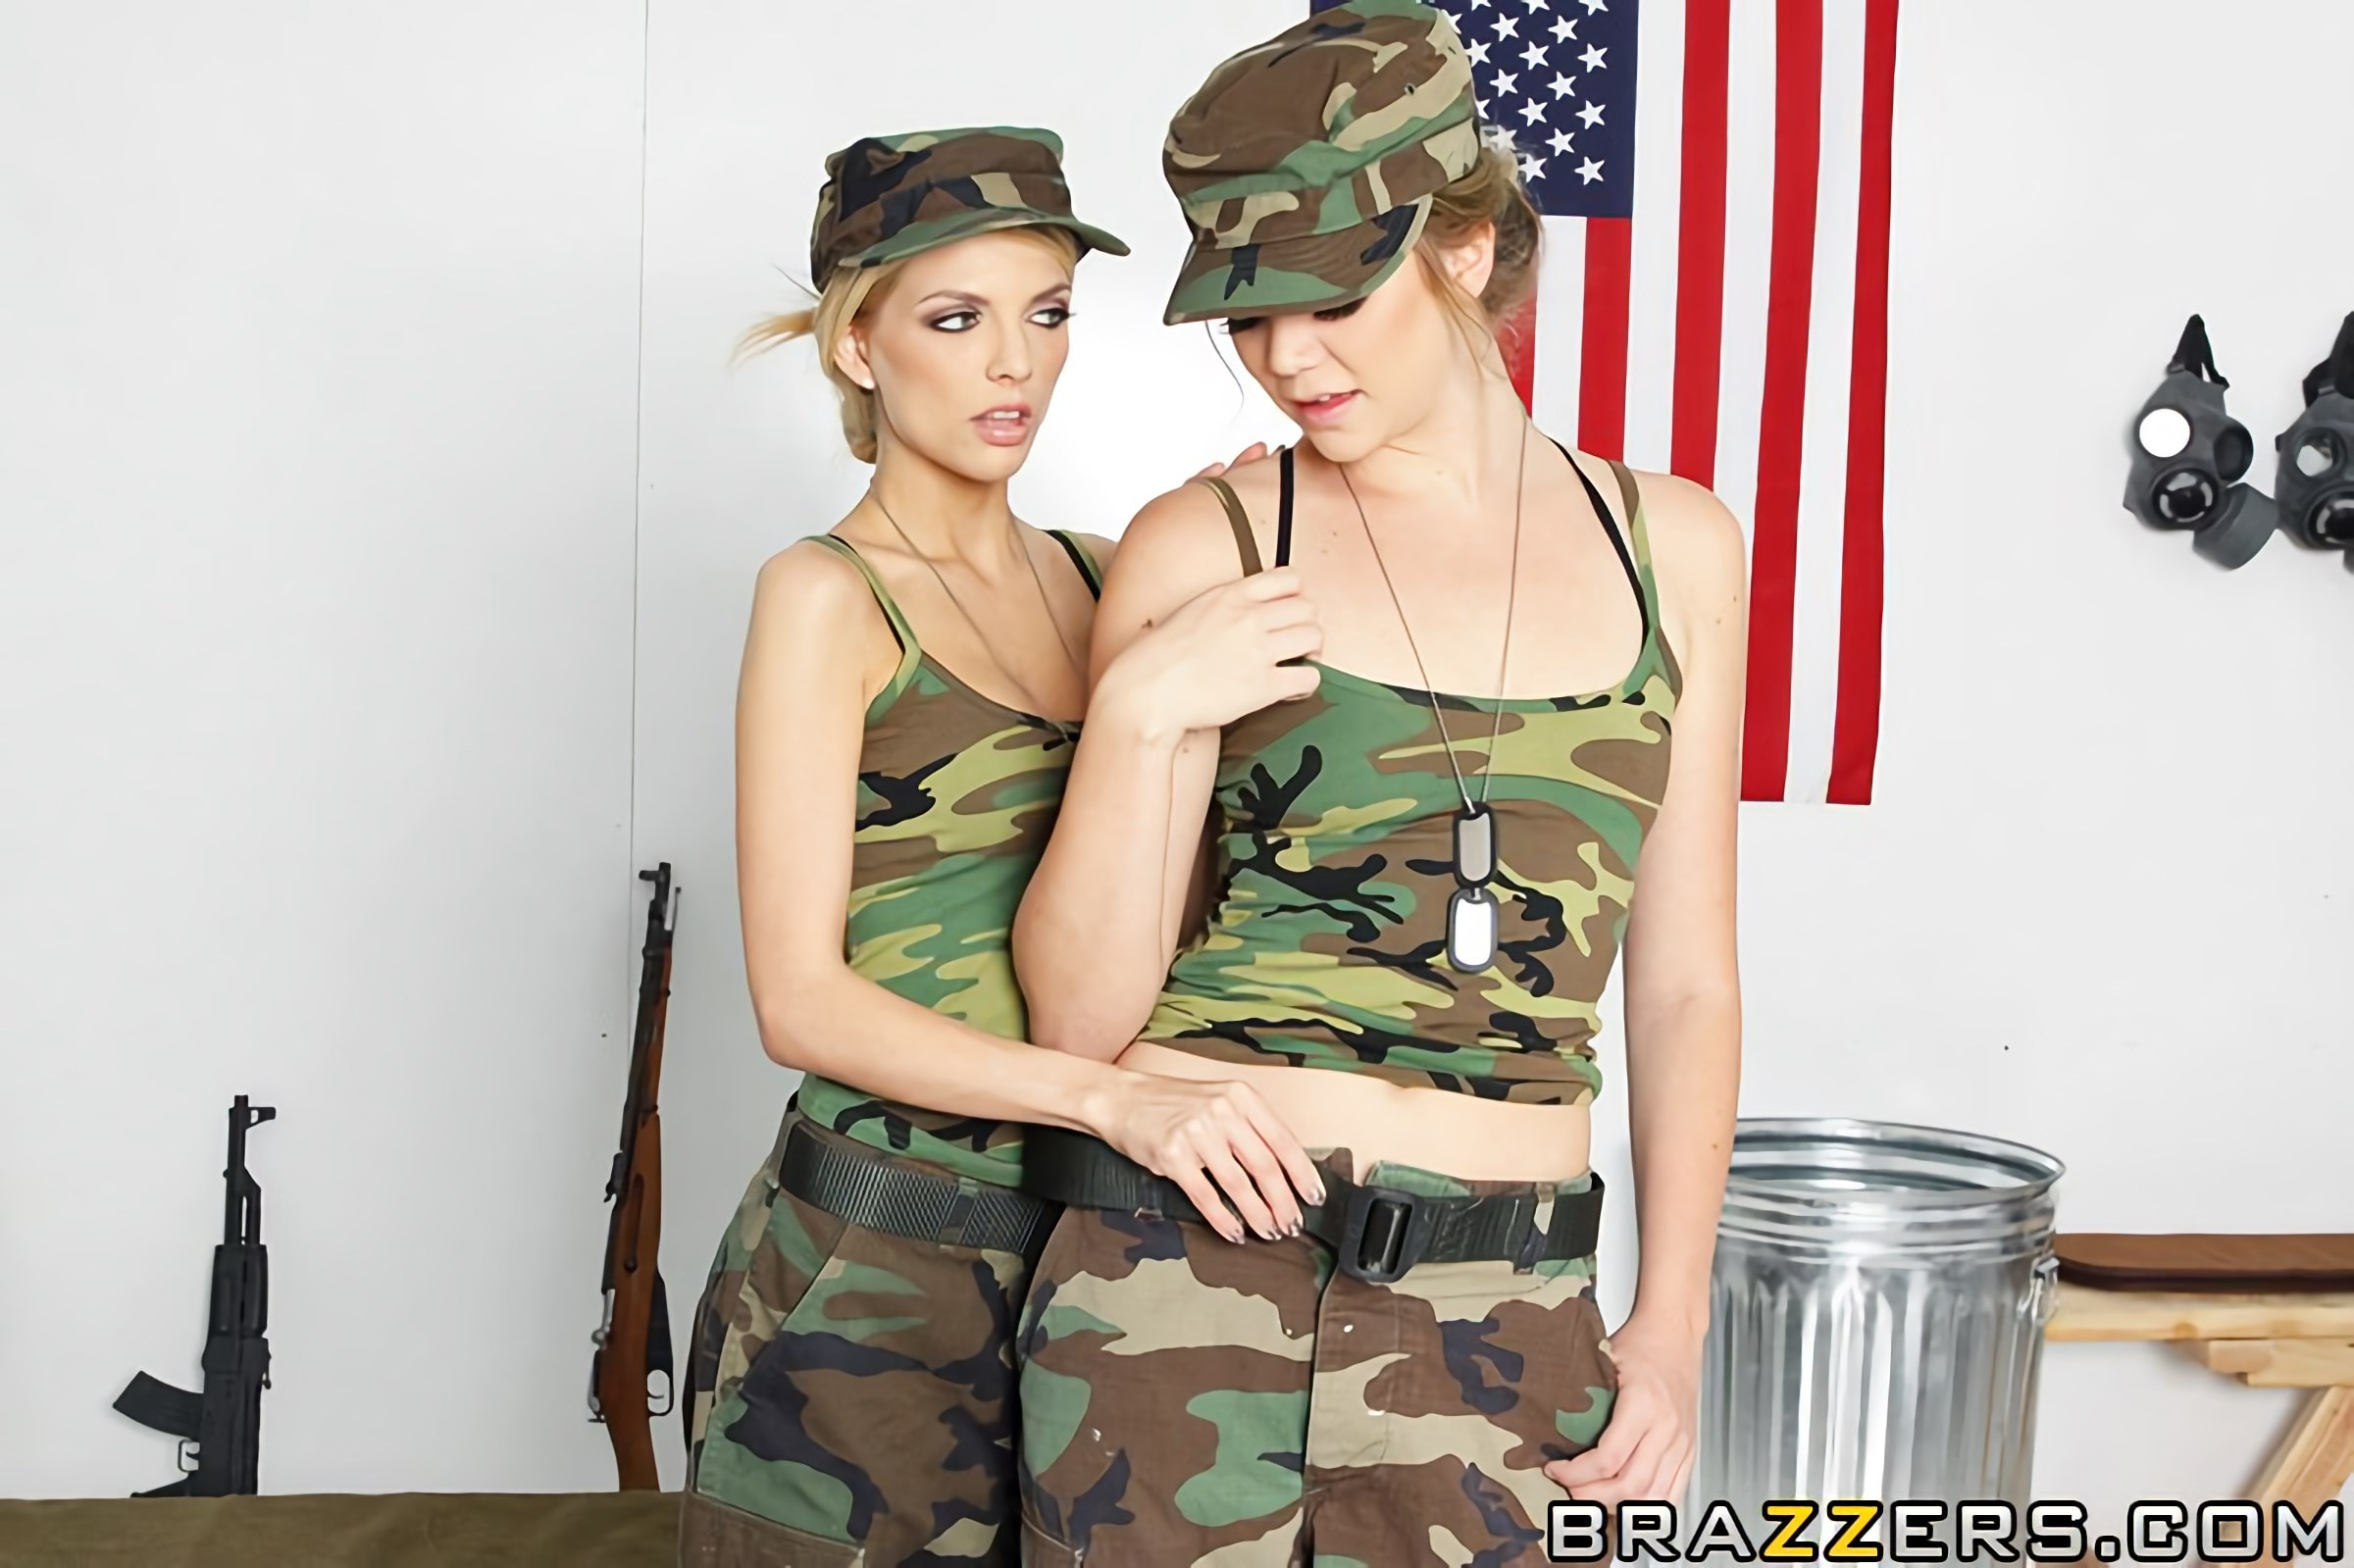 shetty-sex-lesbian-military-trailer-virgin